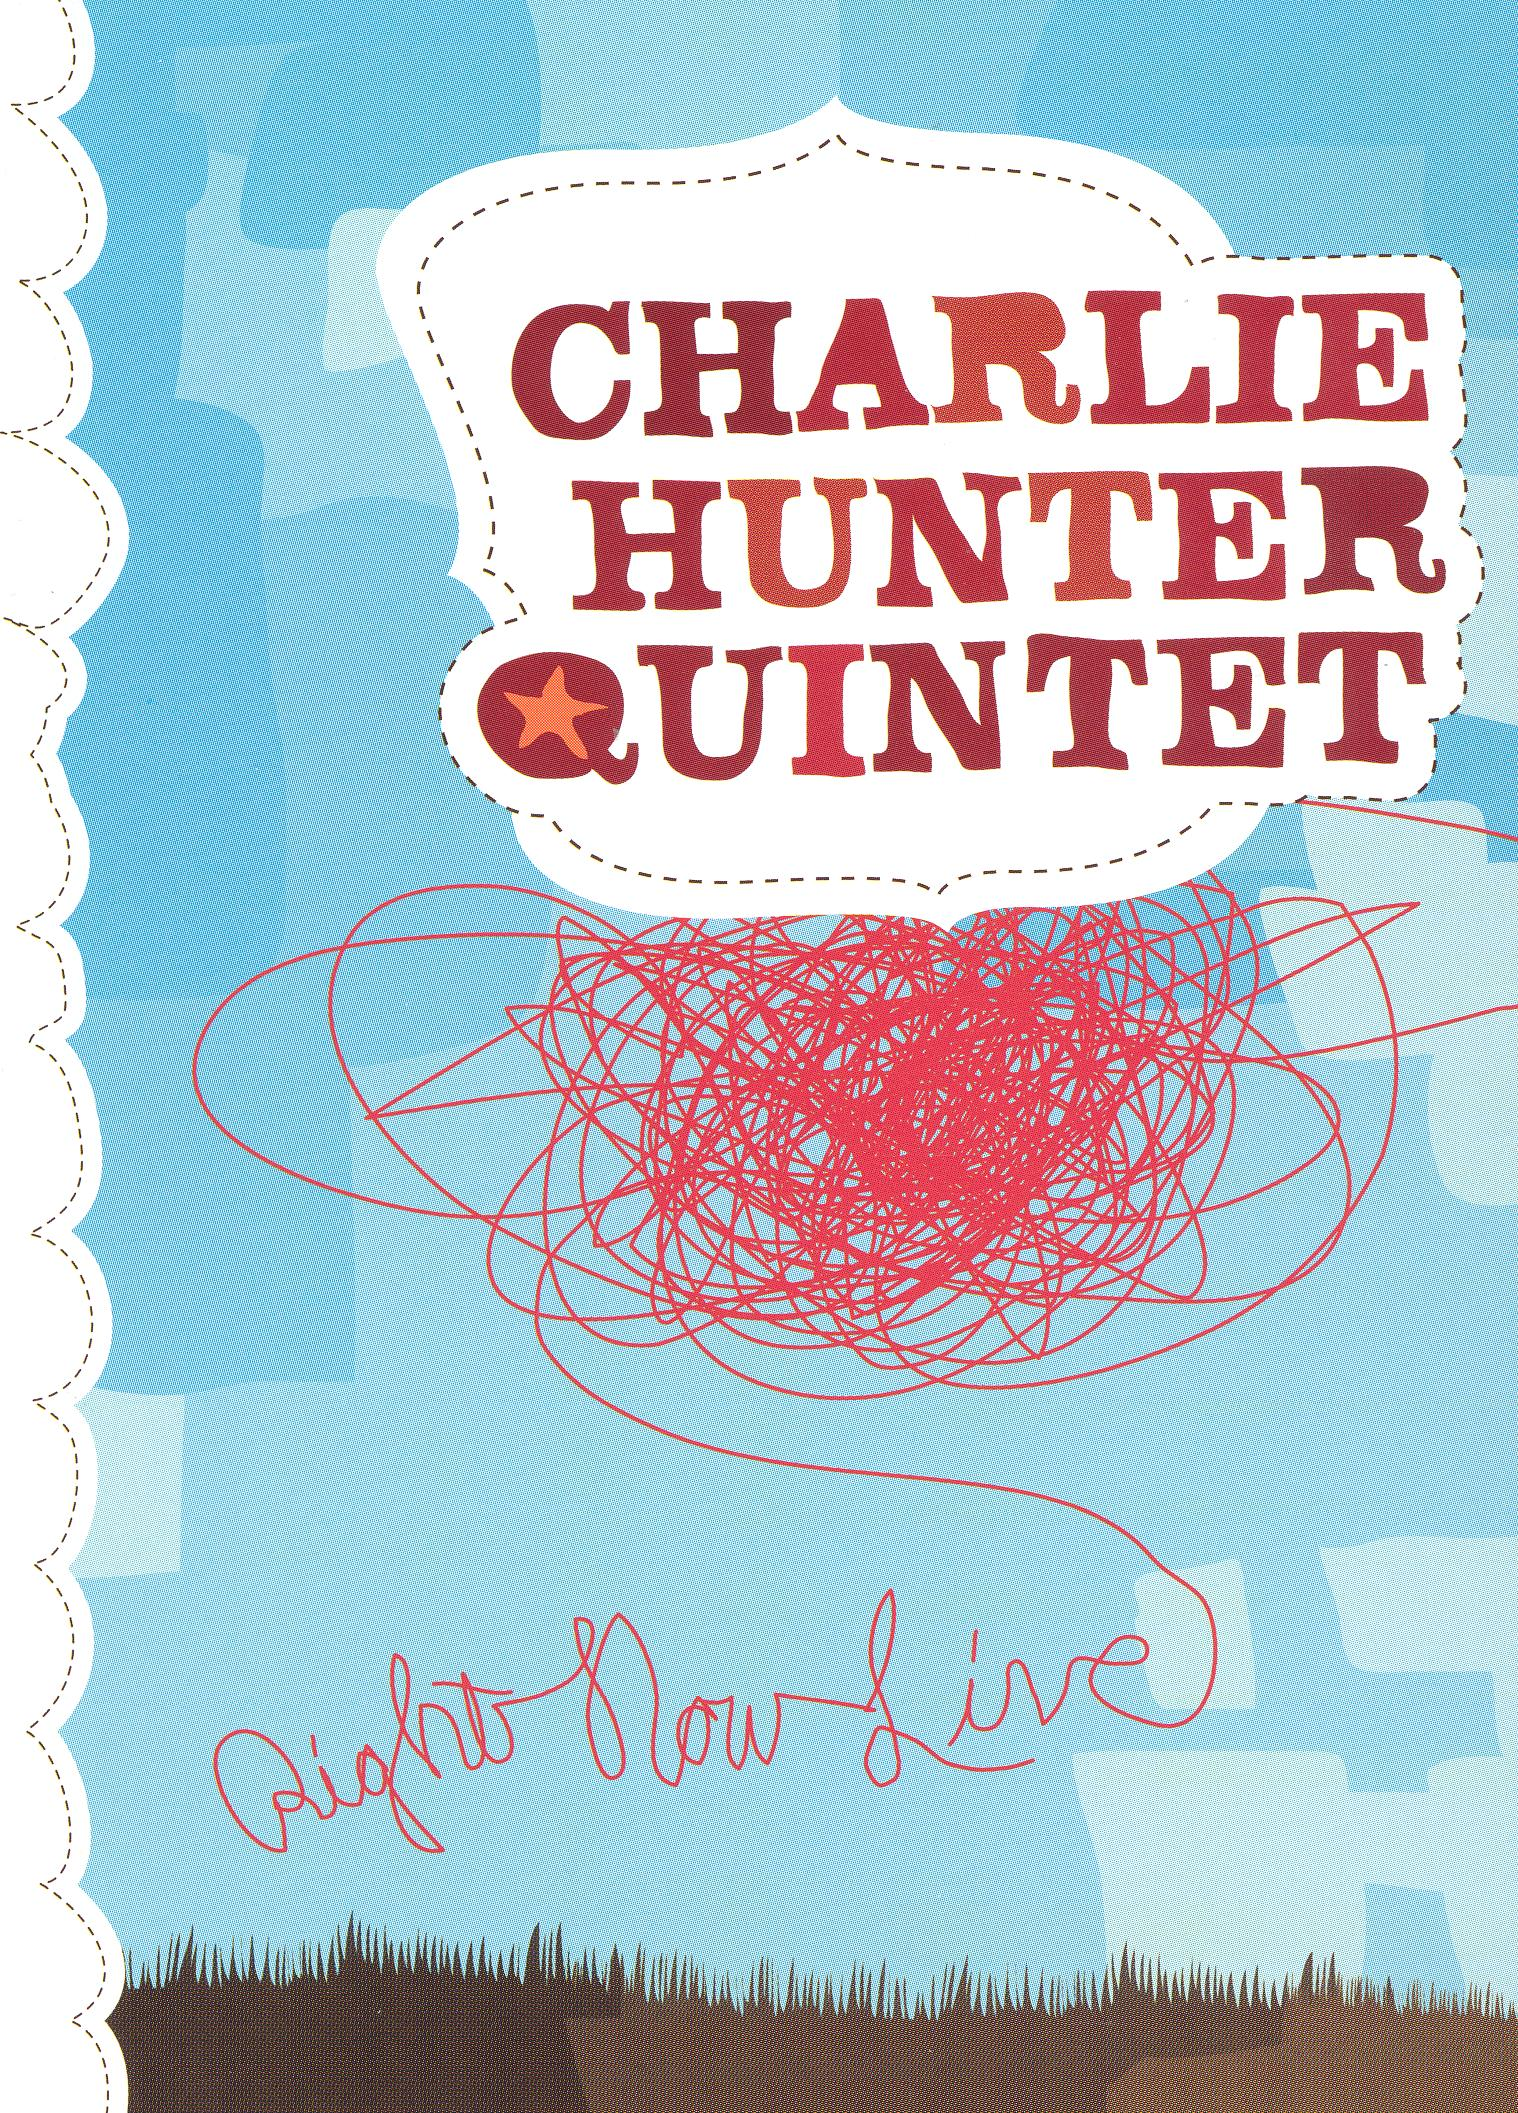 The Charlie Hunter Quintet: Right Now Live